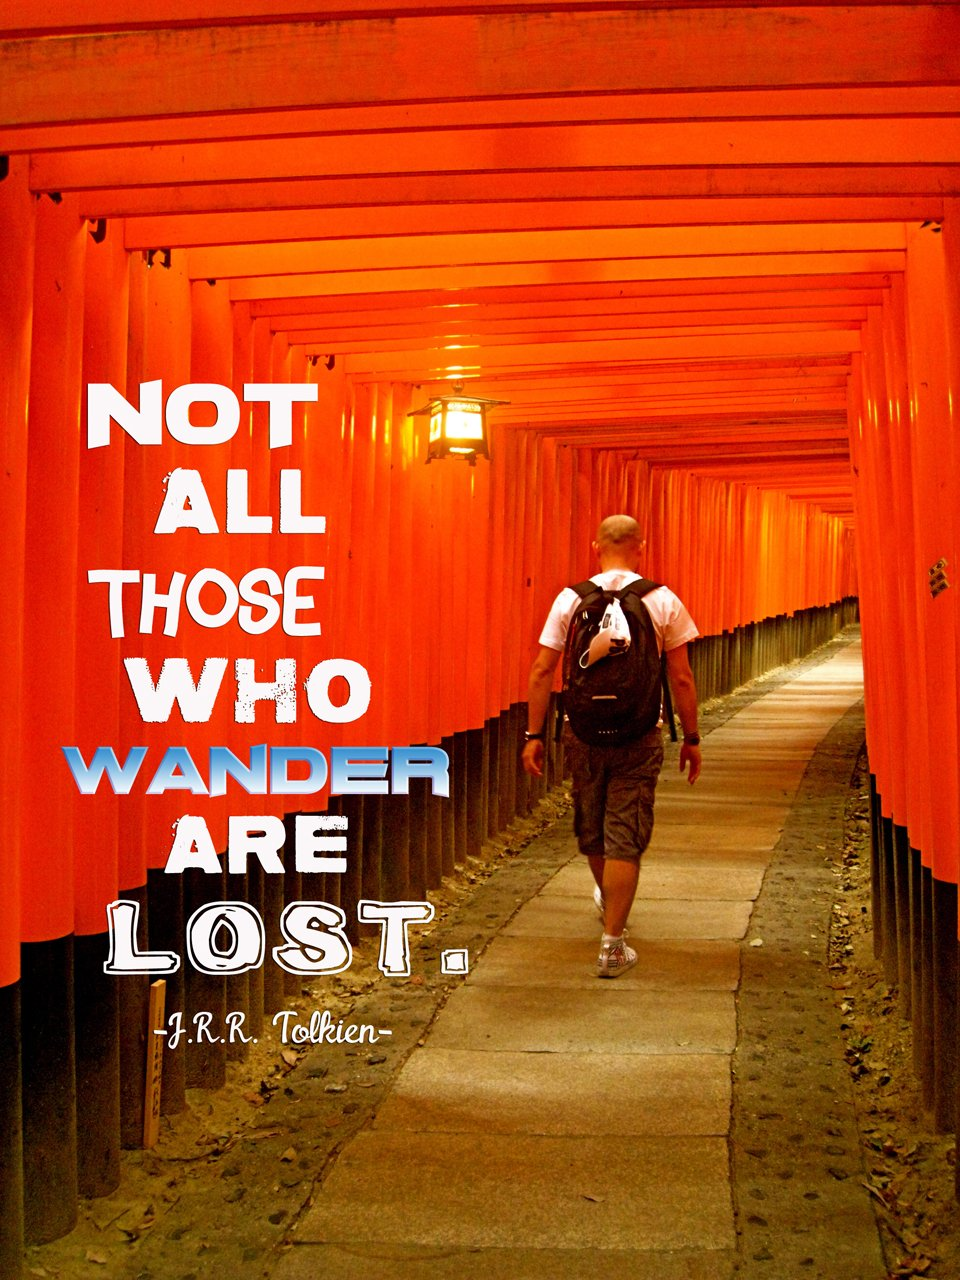 Inspiring Travel Quote JRR Tolkien